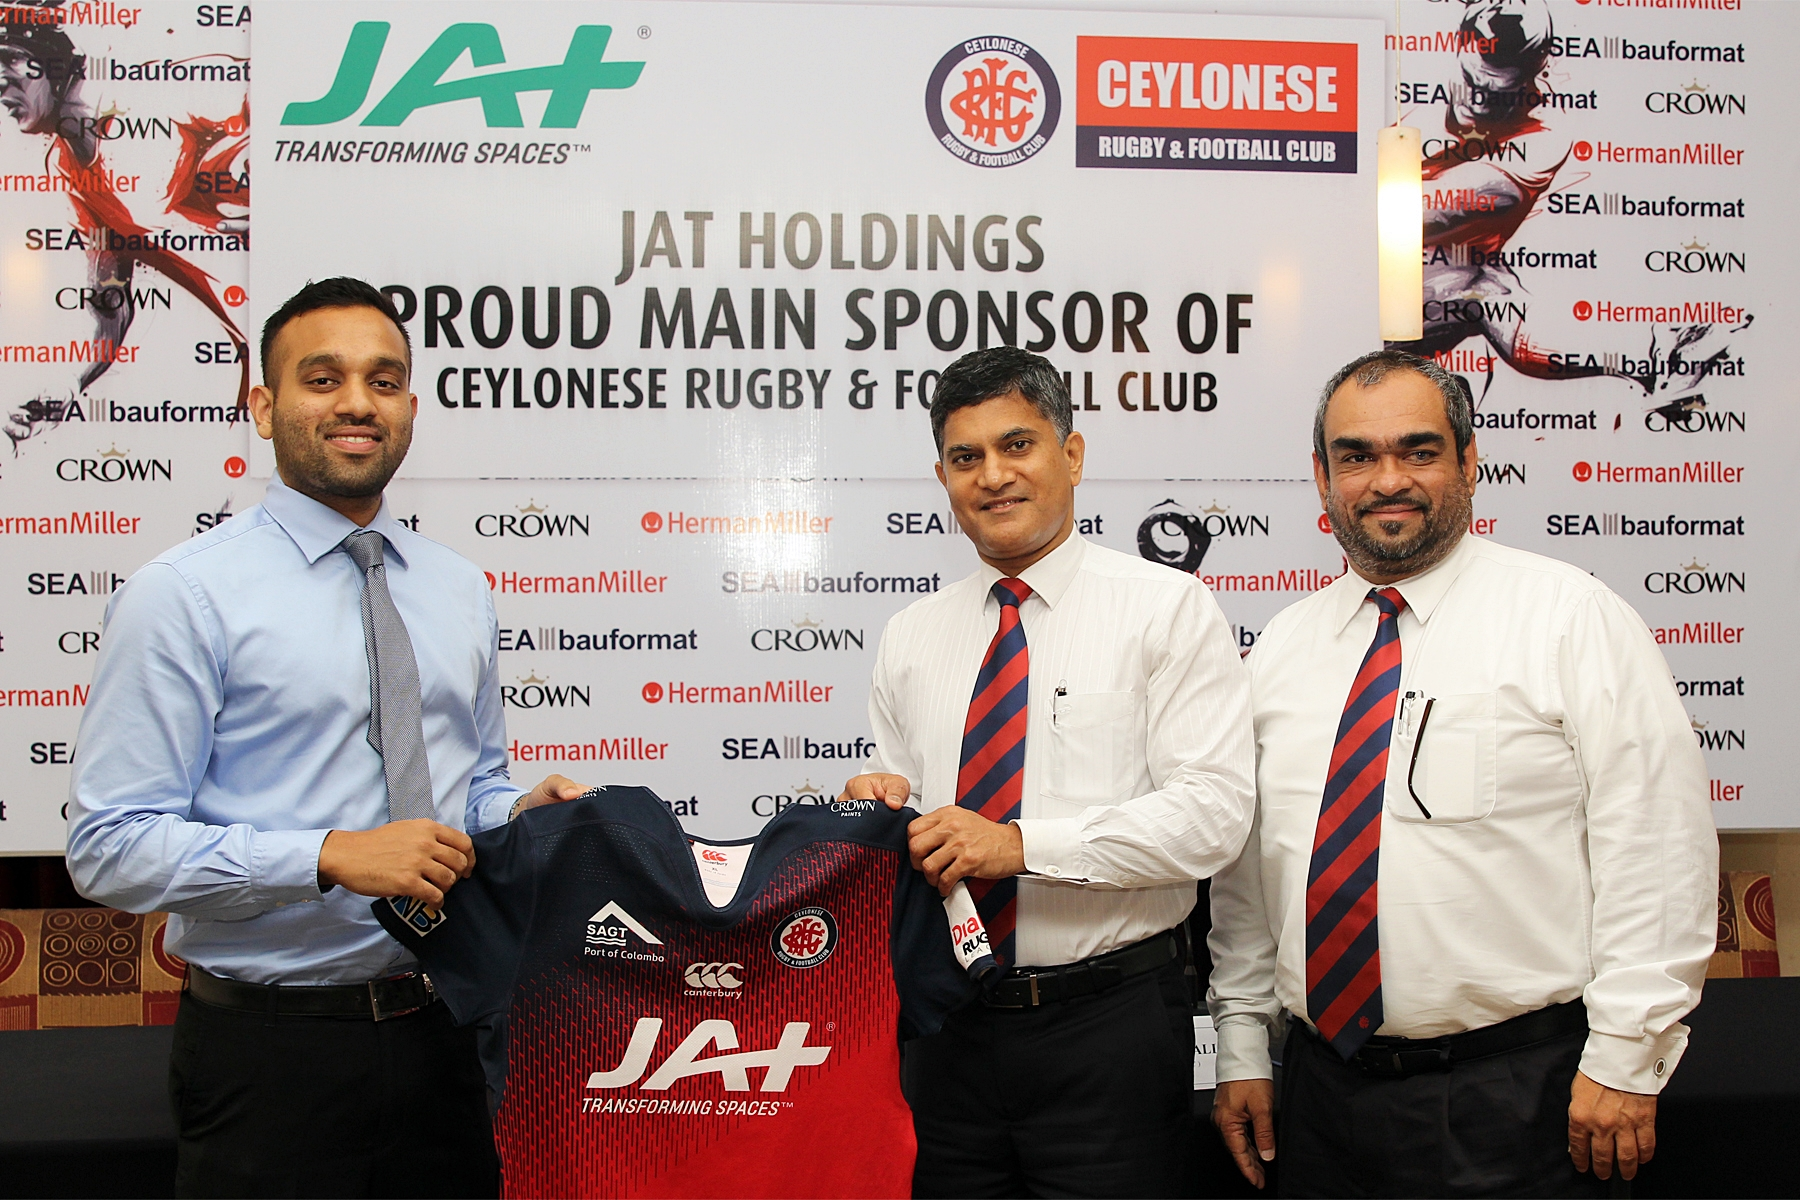 CEYLONESE rugby and football club sponsored by JAT Holdings